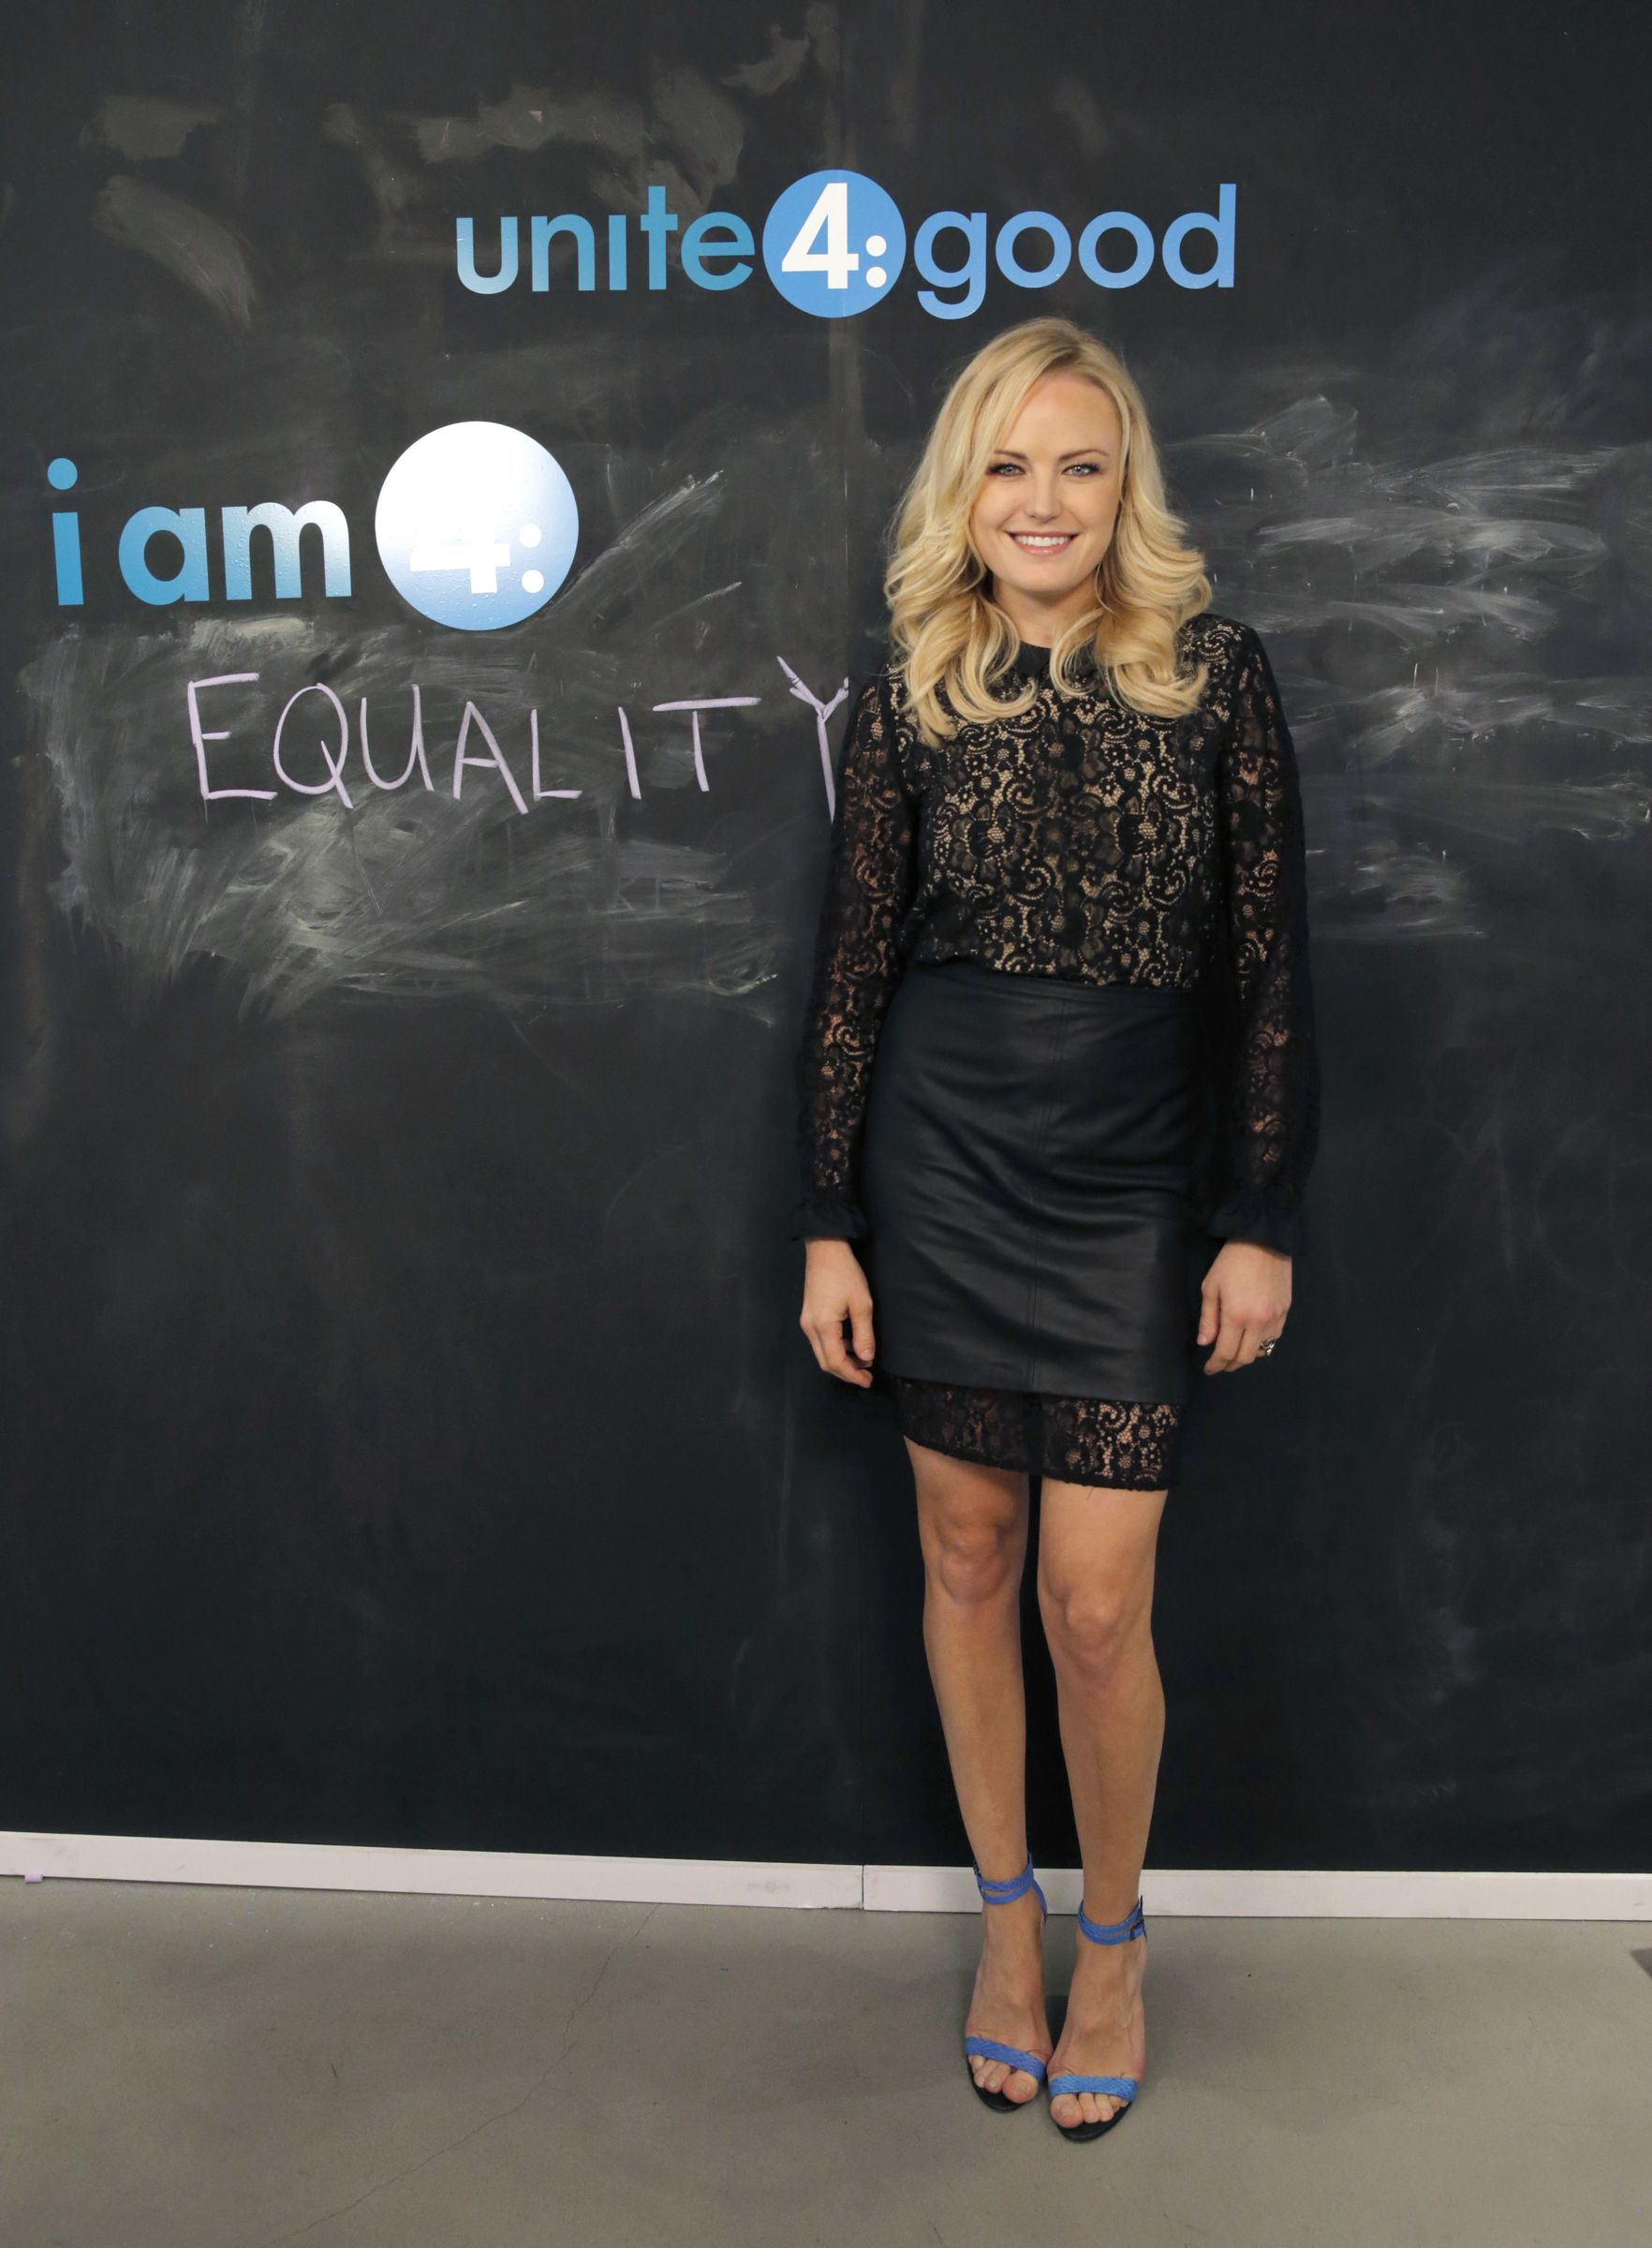 Malin Akerman attends the Variety Studio supporting unite4:good, on Wednesday, November, 20, 2013 in West Hollywood, California.